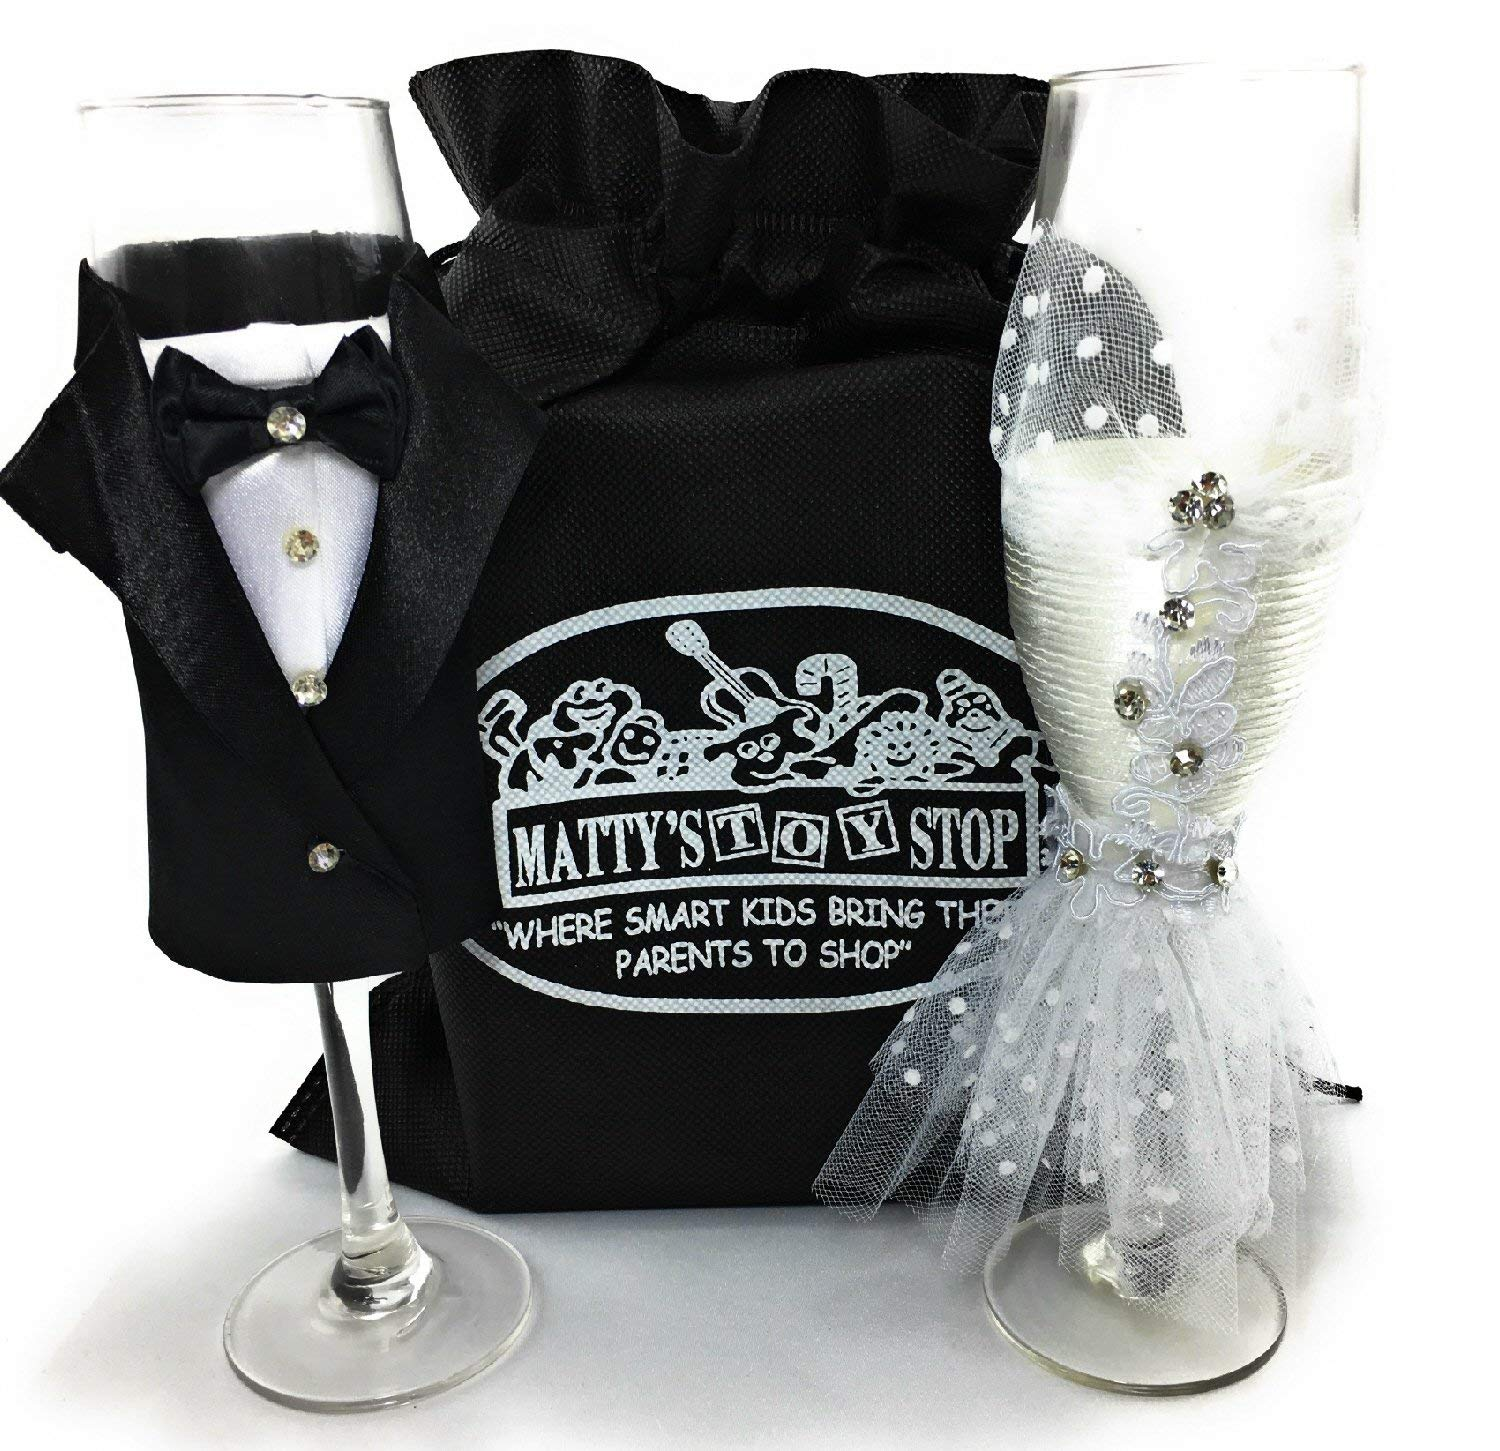 5324cb995c Get Quotations · Bride and Groom Handmade Wedding Dress   Tuxedo Champagne  Flute Glasses Gift Set Bundle with Exclusive